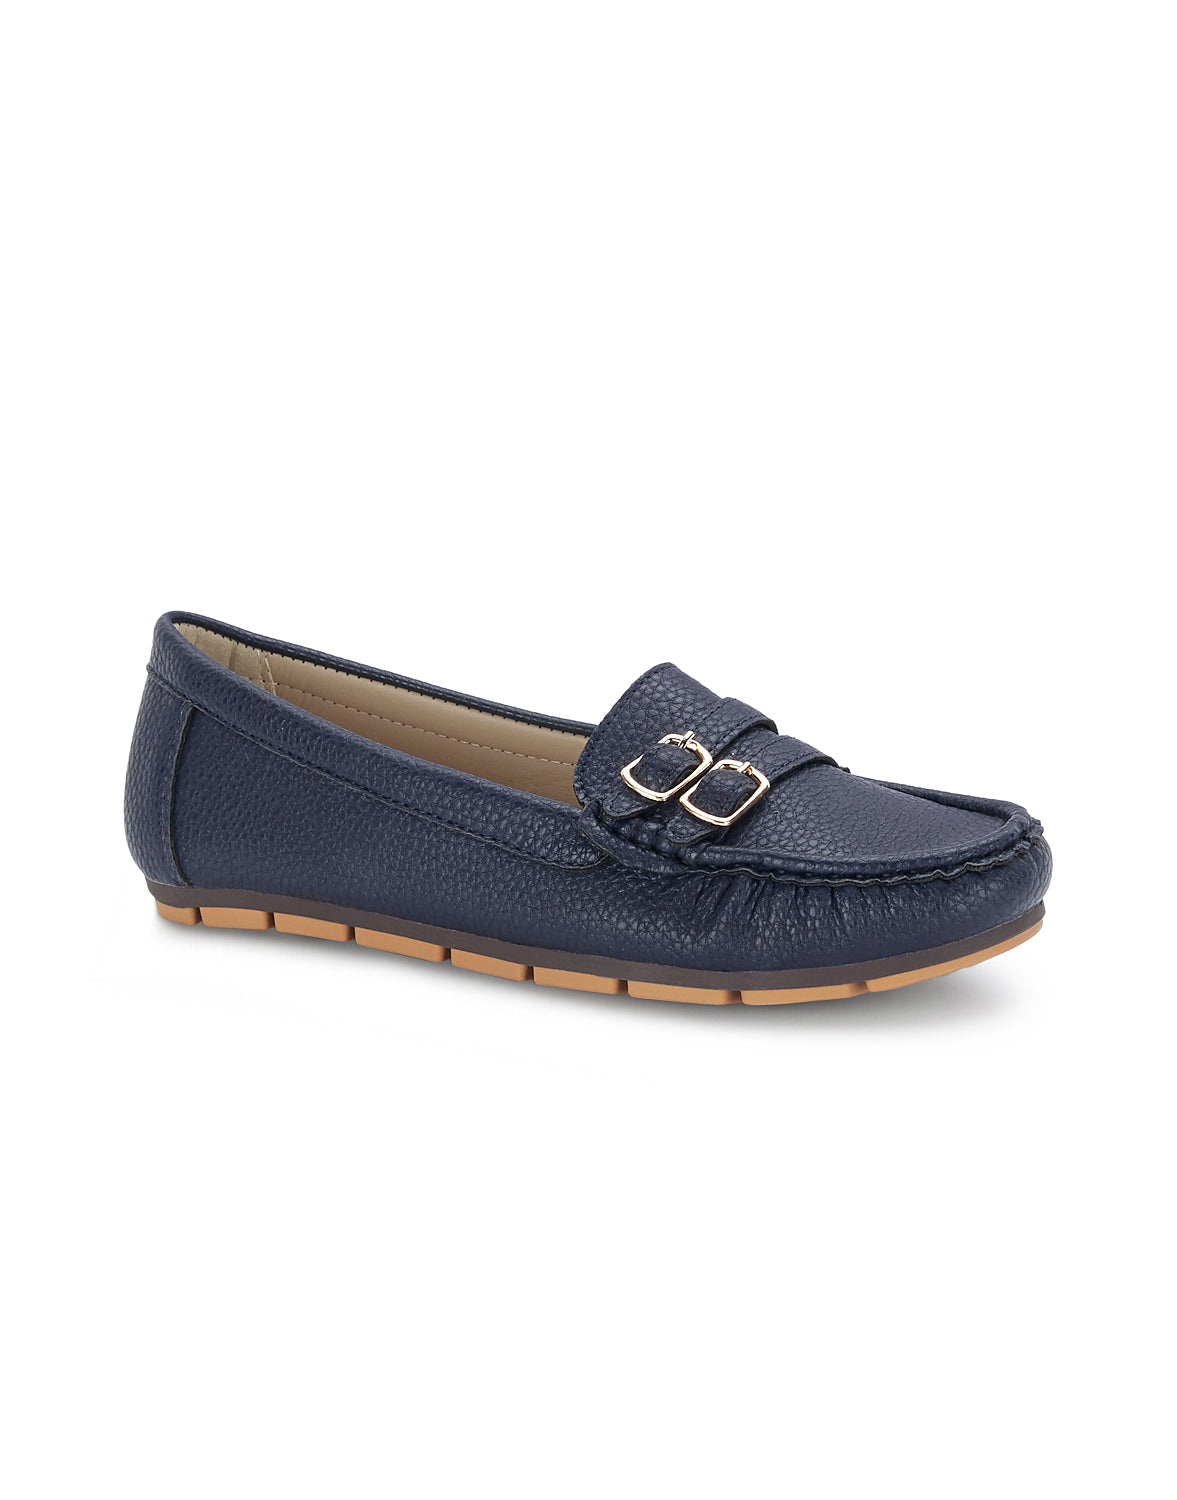 Verney Navy Round Toe Loafers